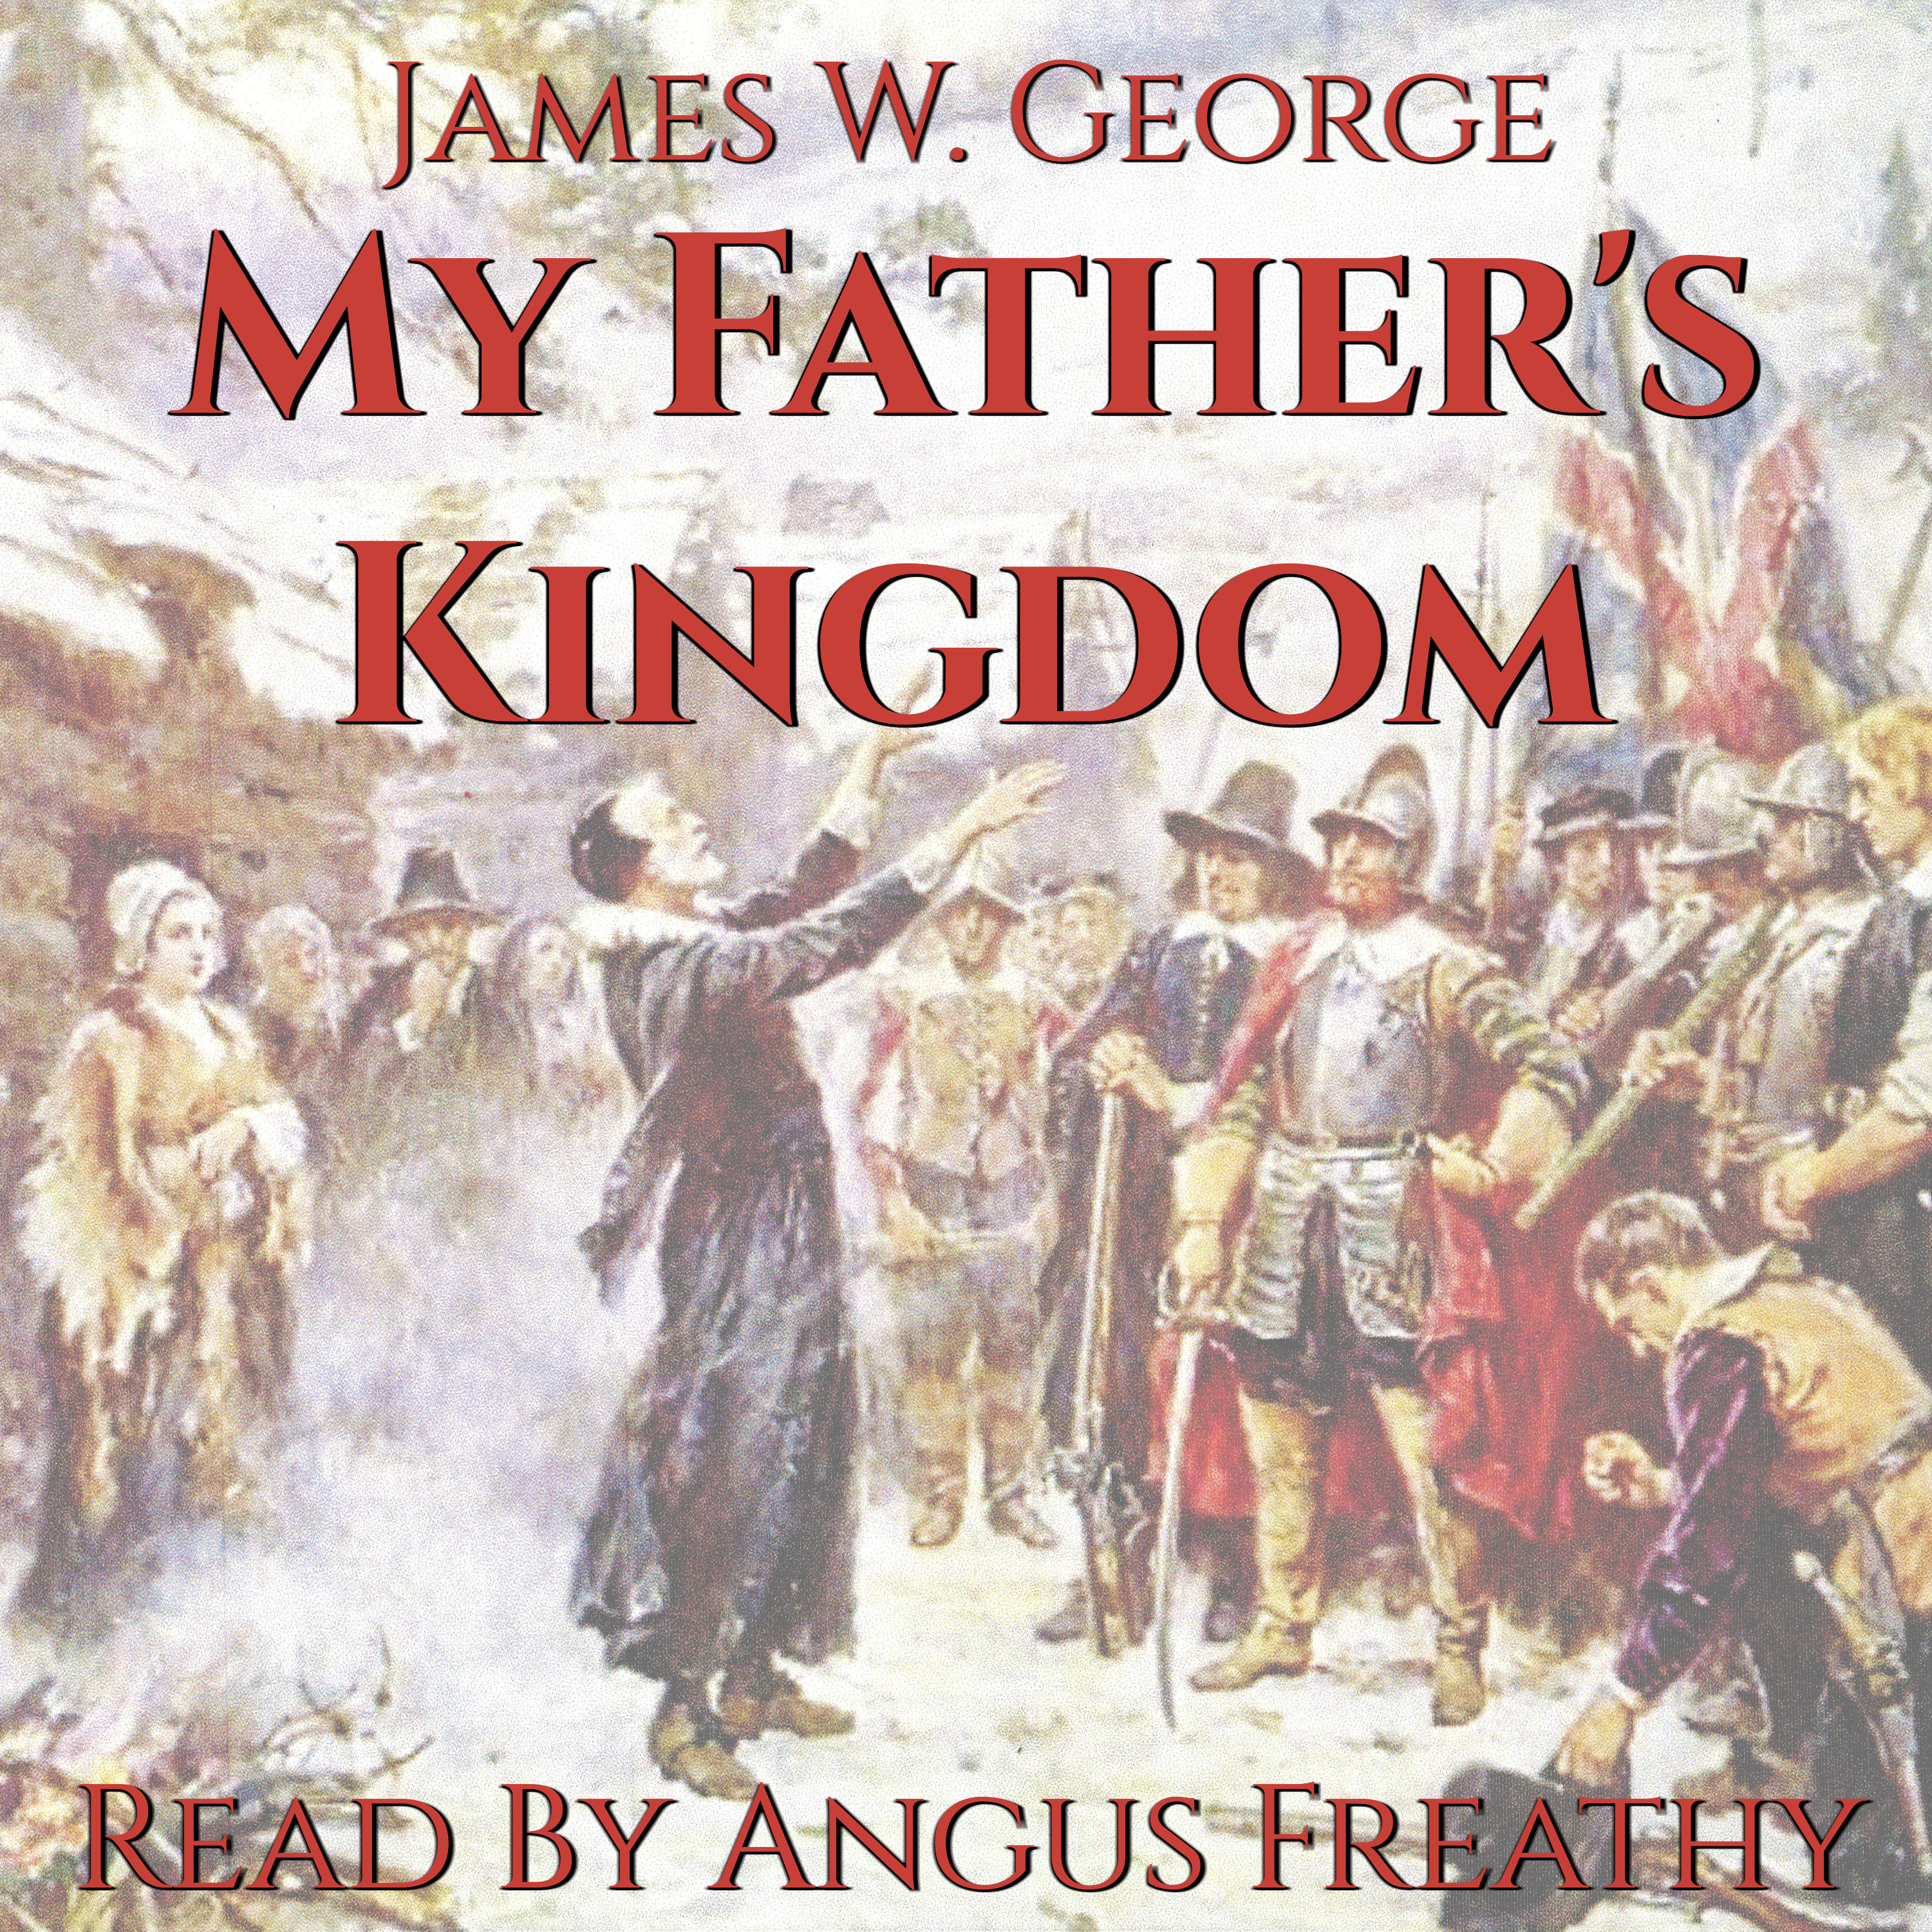 My Father's Kingdom Audiobook Review